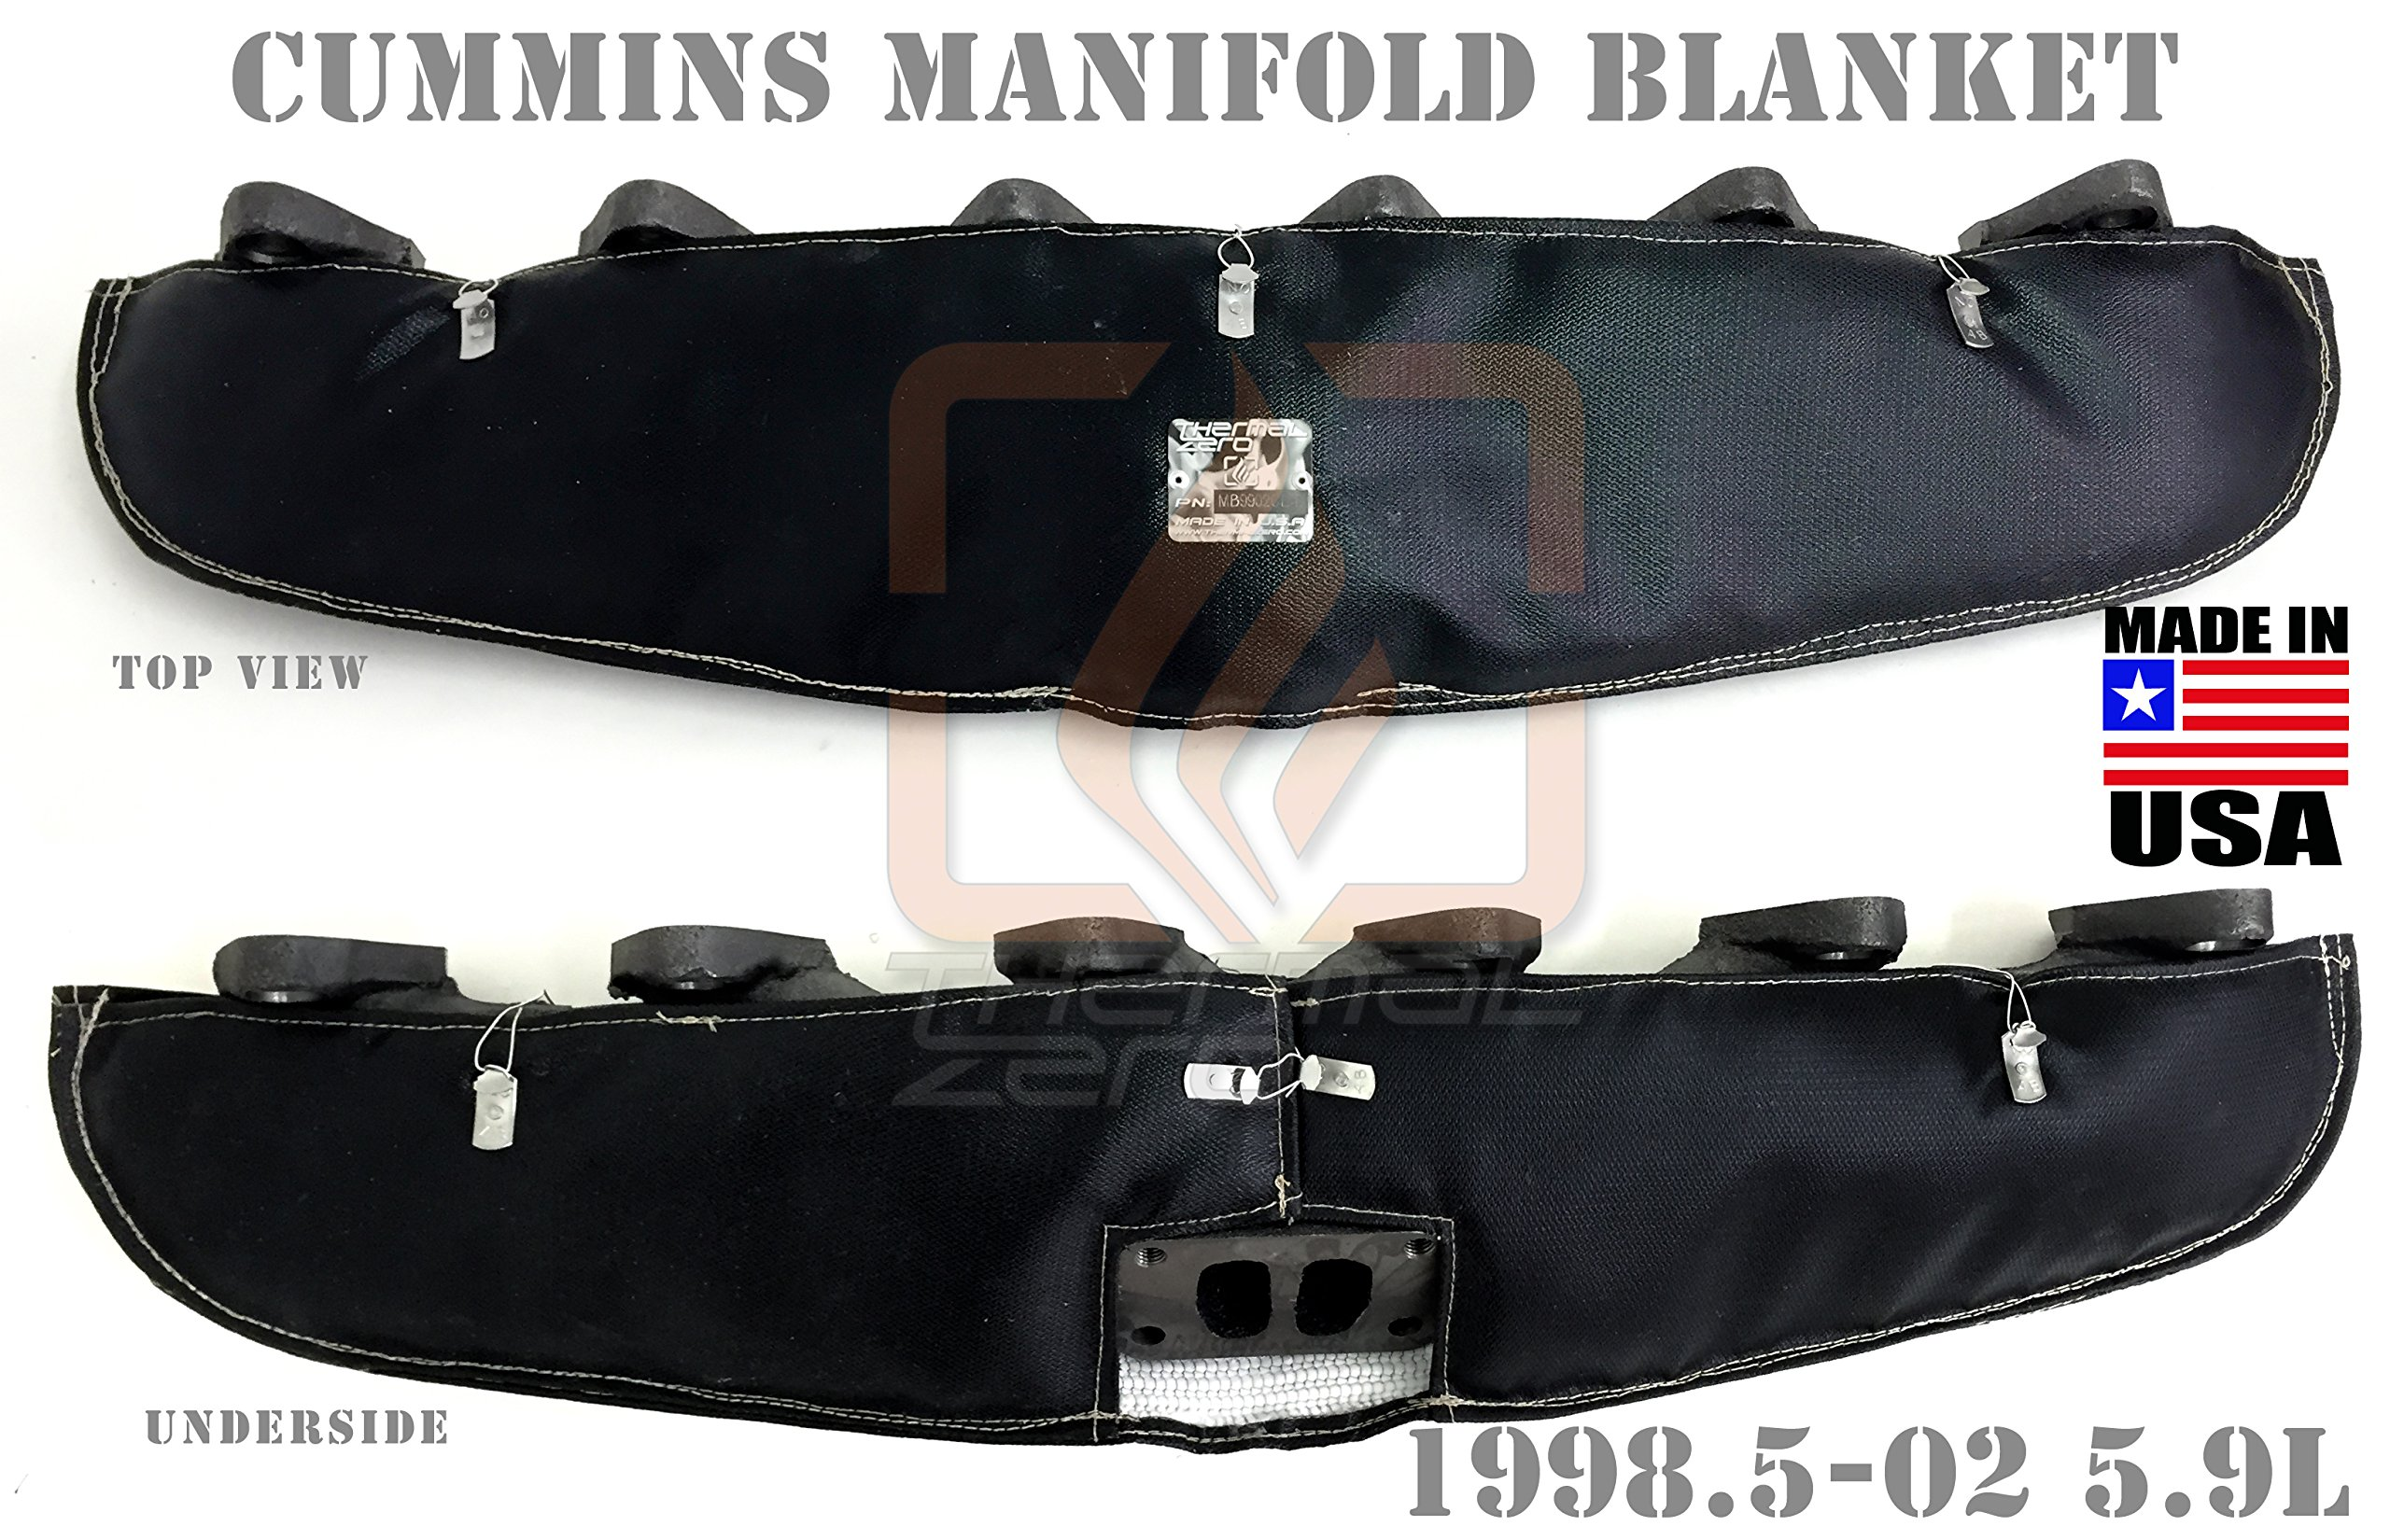 BLACK TURBO MANIFOLD BLANKET FOR 12V AND 24V 1999 - 2002 DODGE RAM 2500 AND 3500 5.9 CUMMINS DIESEL Holds 2400 degrees. MADE IN USA - MB9902CD-B